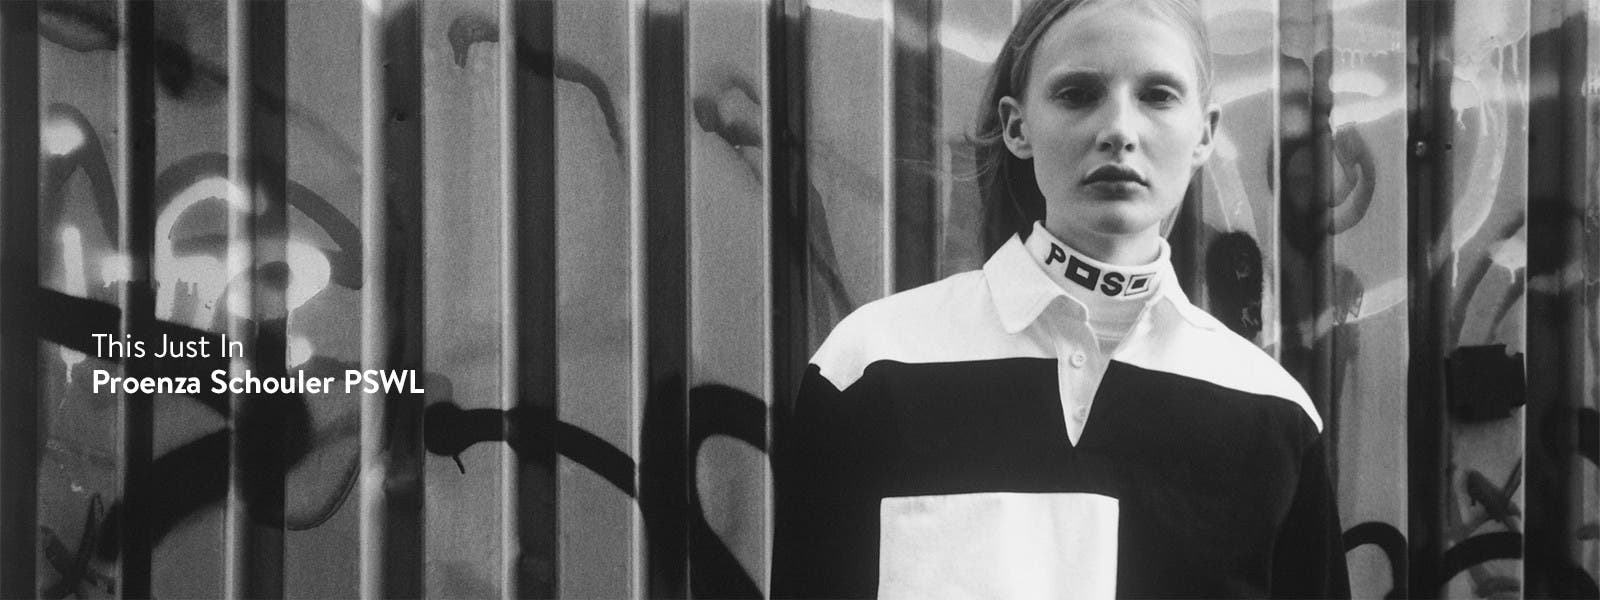 This just in: Proenza Schouler White Label.